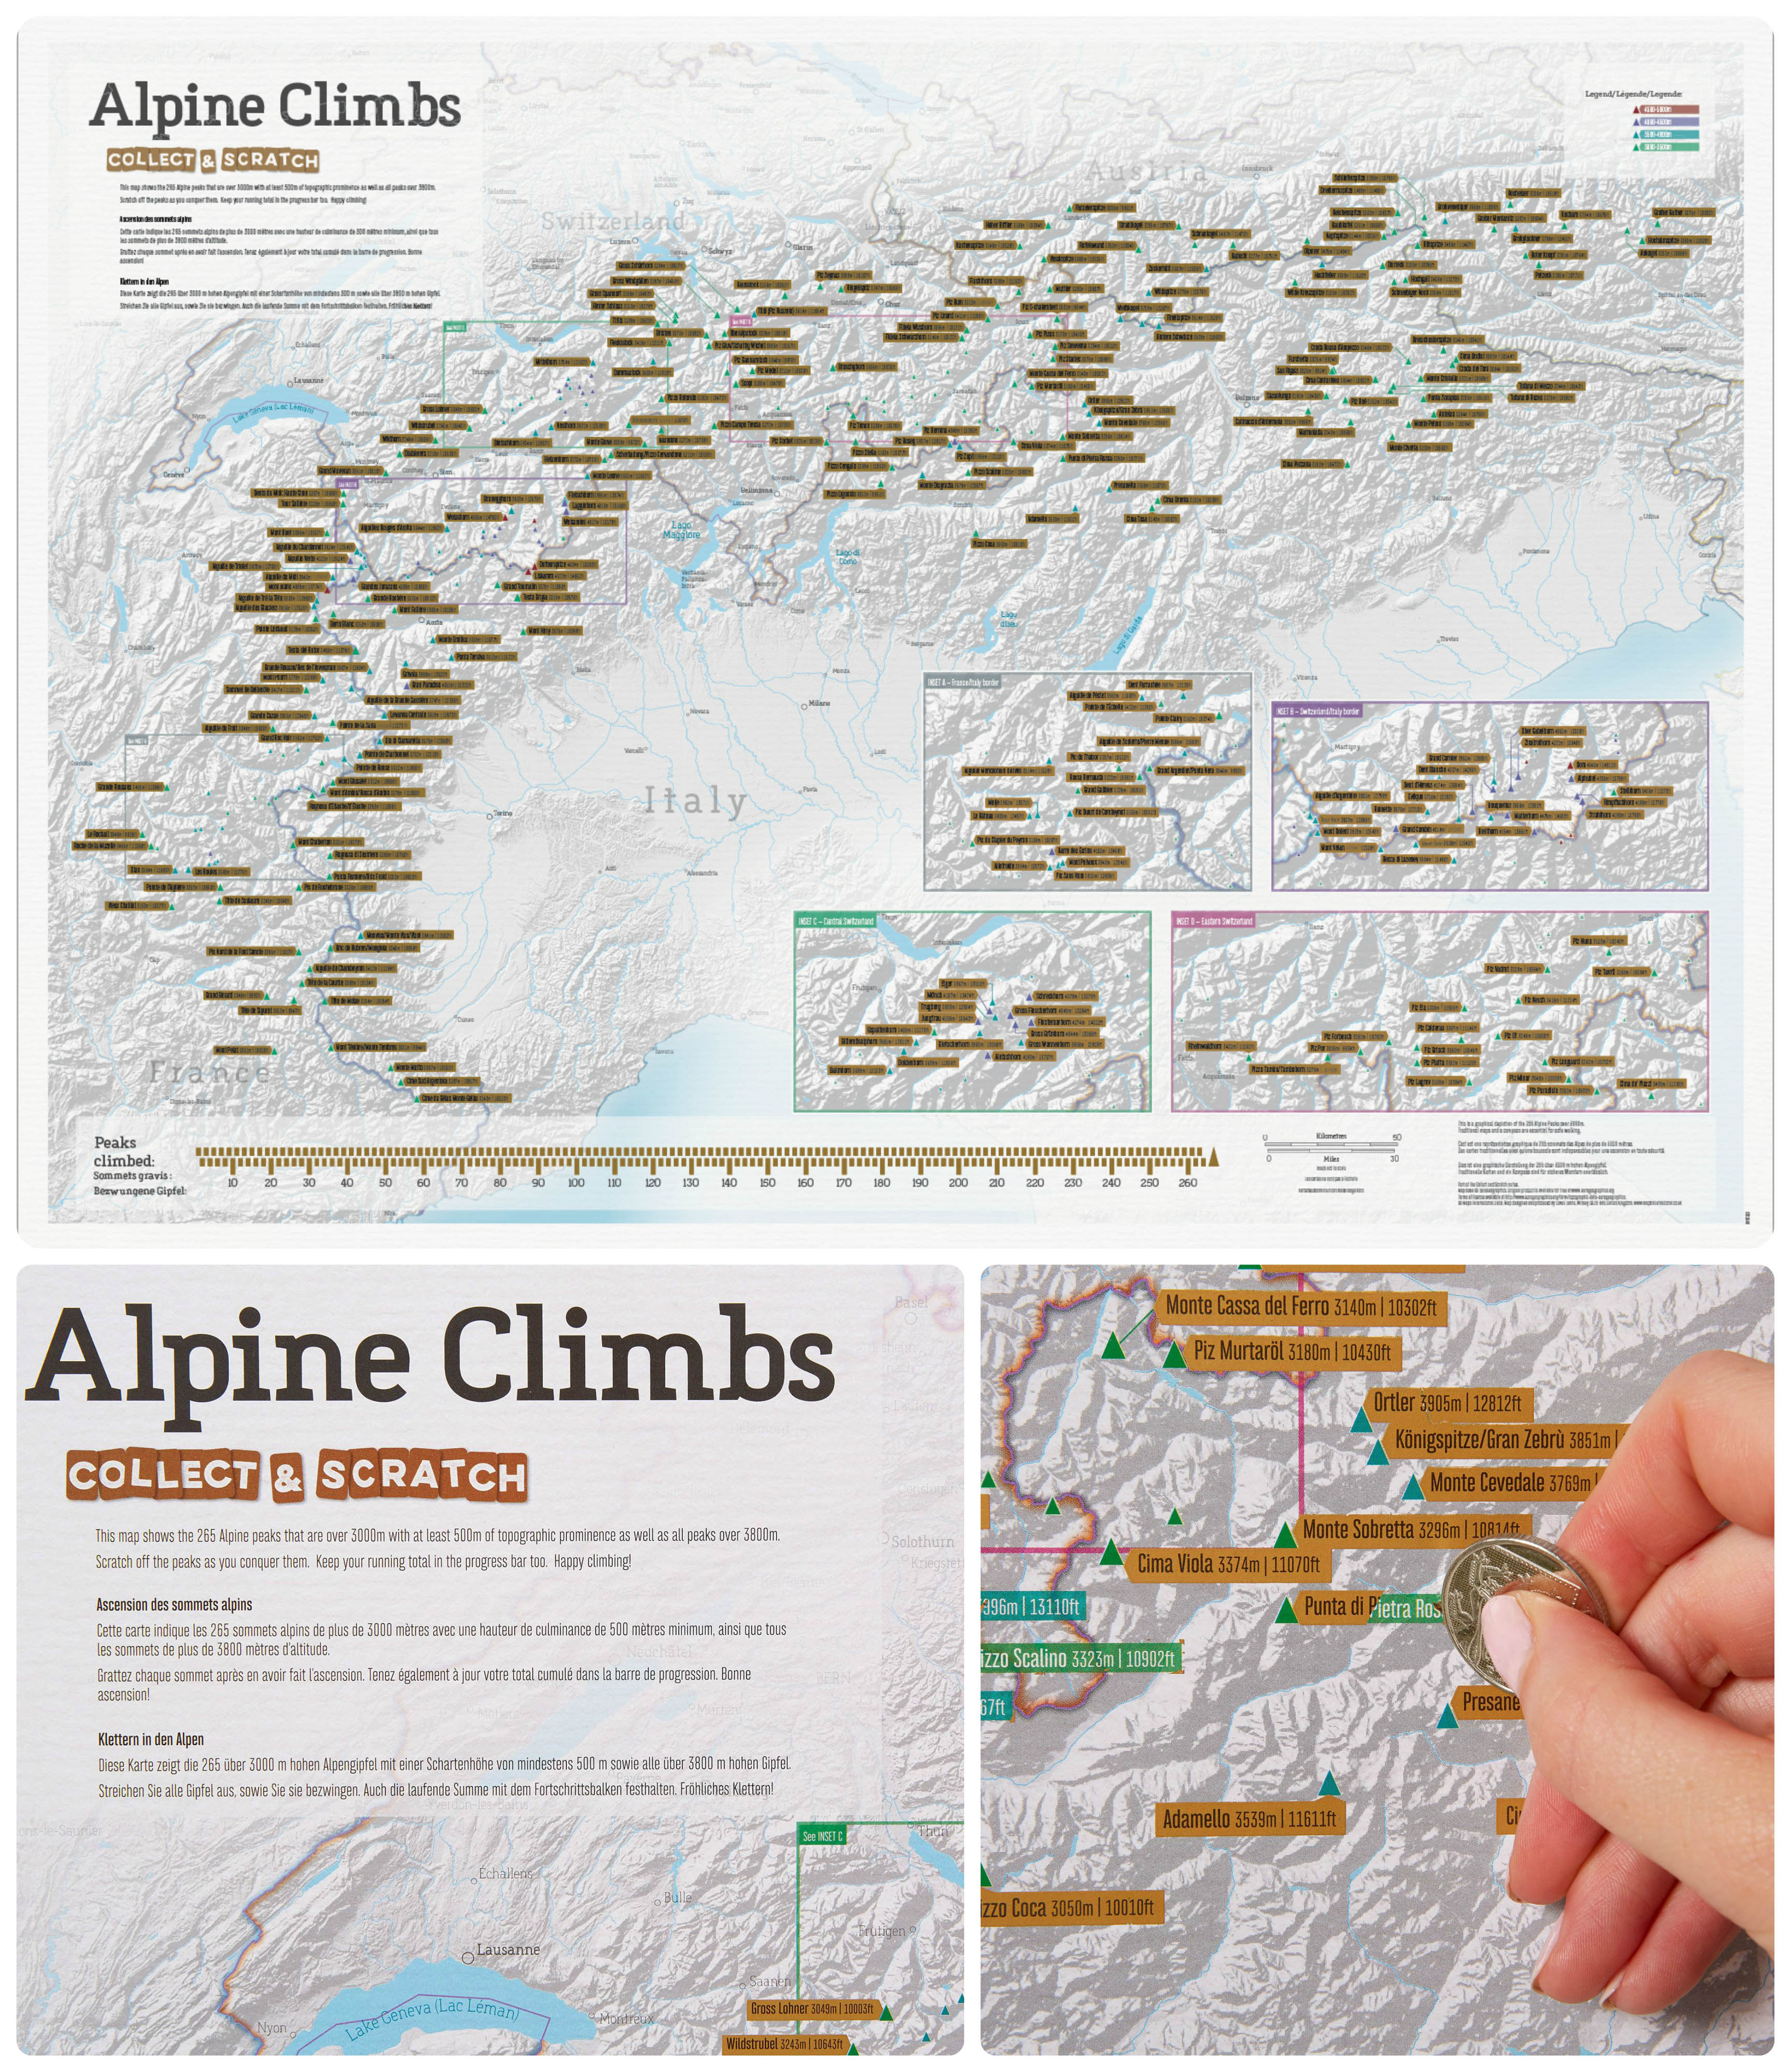 Alpine Climbs Collect & Scratch